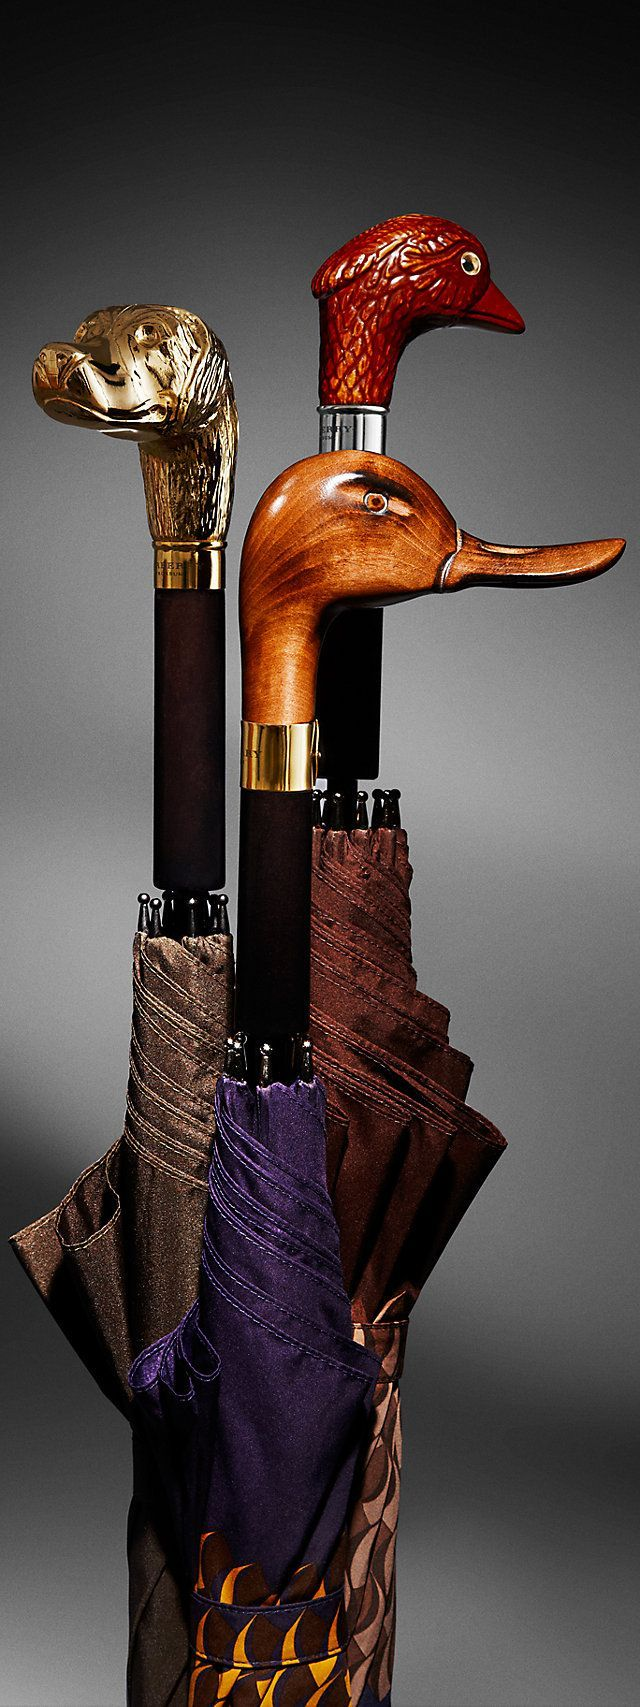 Burberry mens accessories for him.  Looks like something my husband would be ALL over!